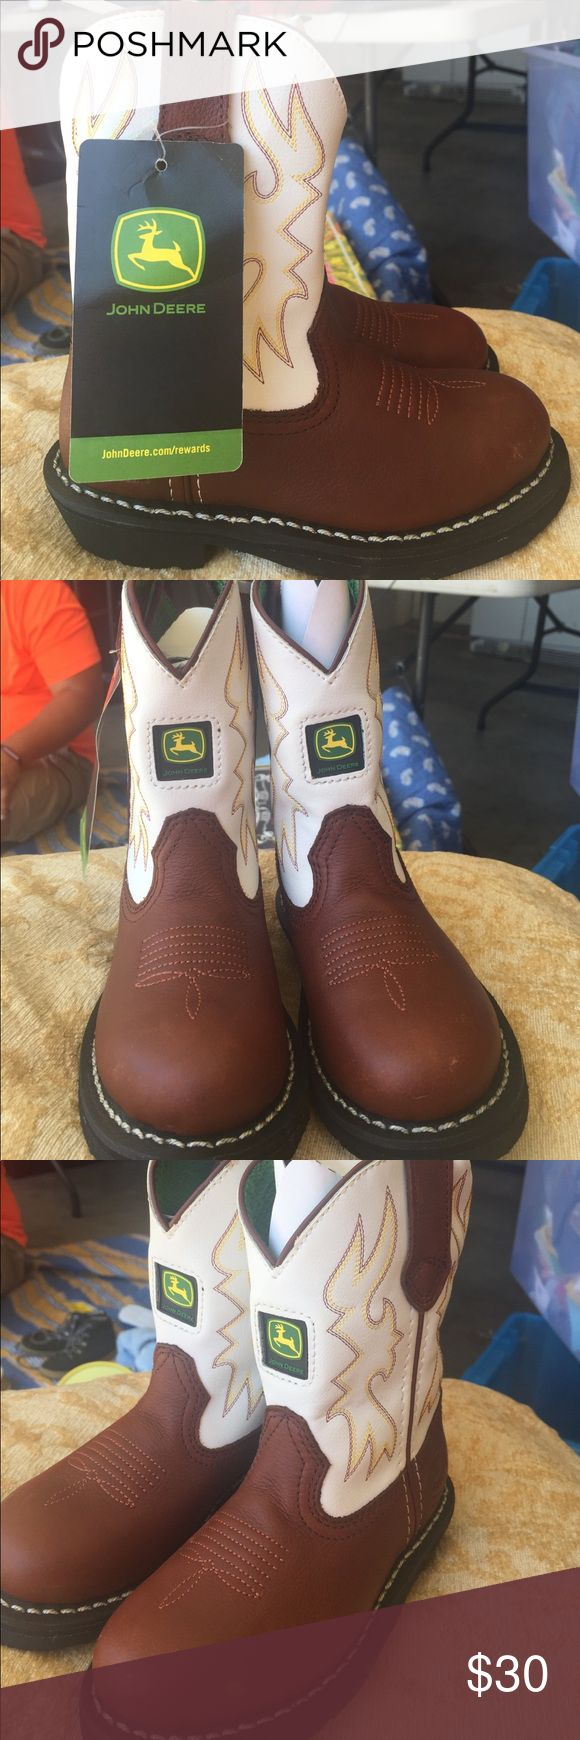 John Deere Kid's Cowboy Boots NWT - Dark Brown & White Pull-On Cowboy Boots. A couple of minor blemishes (see pictures). No box. John Deere Shoes Boots